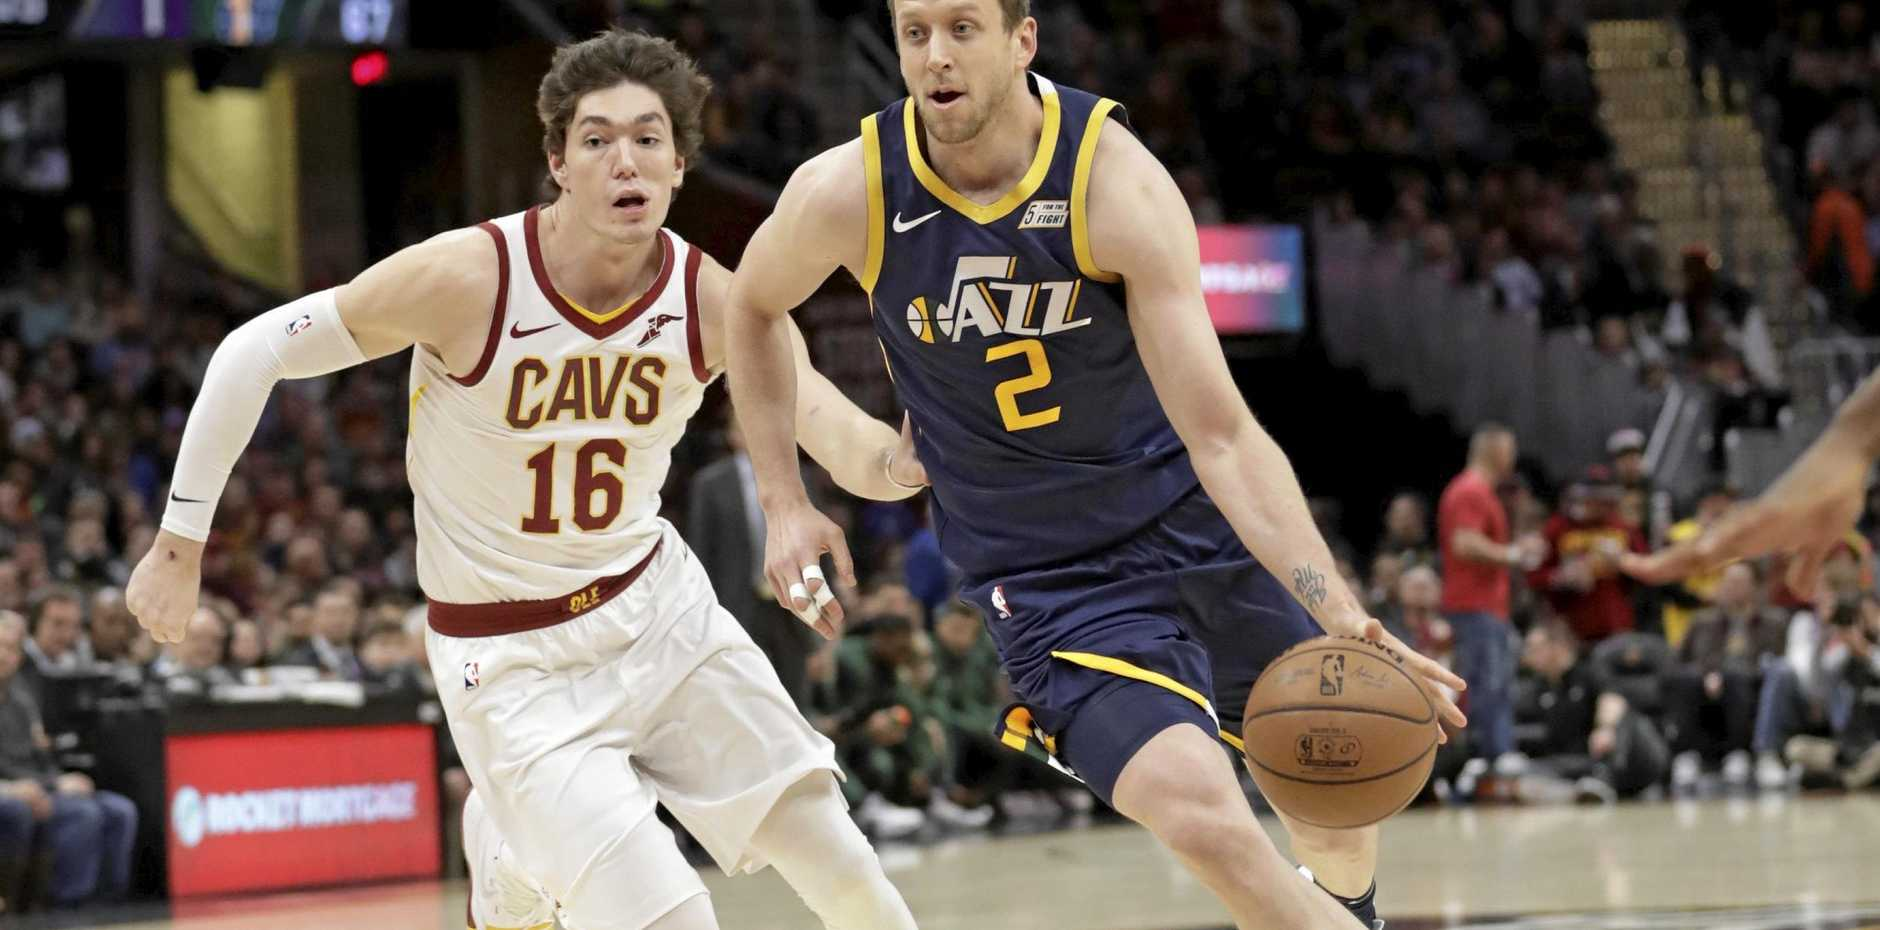 The Jazz's Joe Ingles drives past the Cleveland Cavaliers' Cedi Osman in the first half. Picture: Tony Dejak/AP